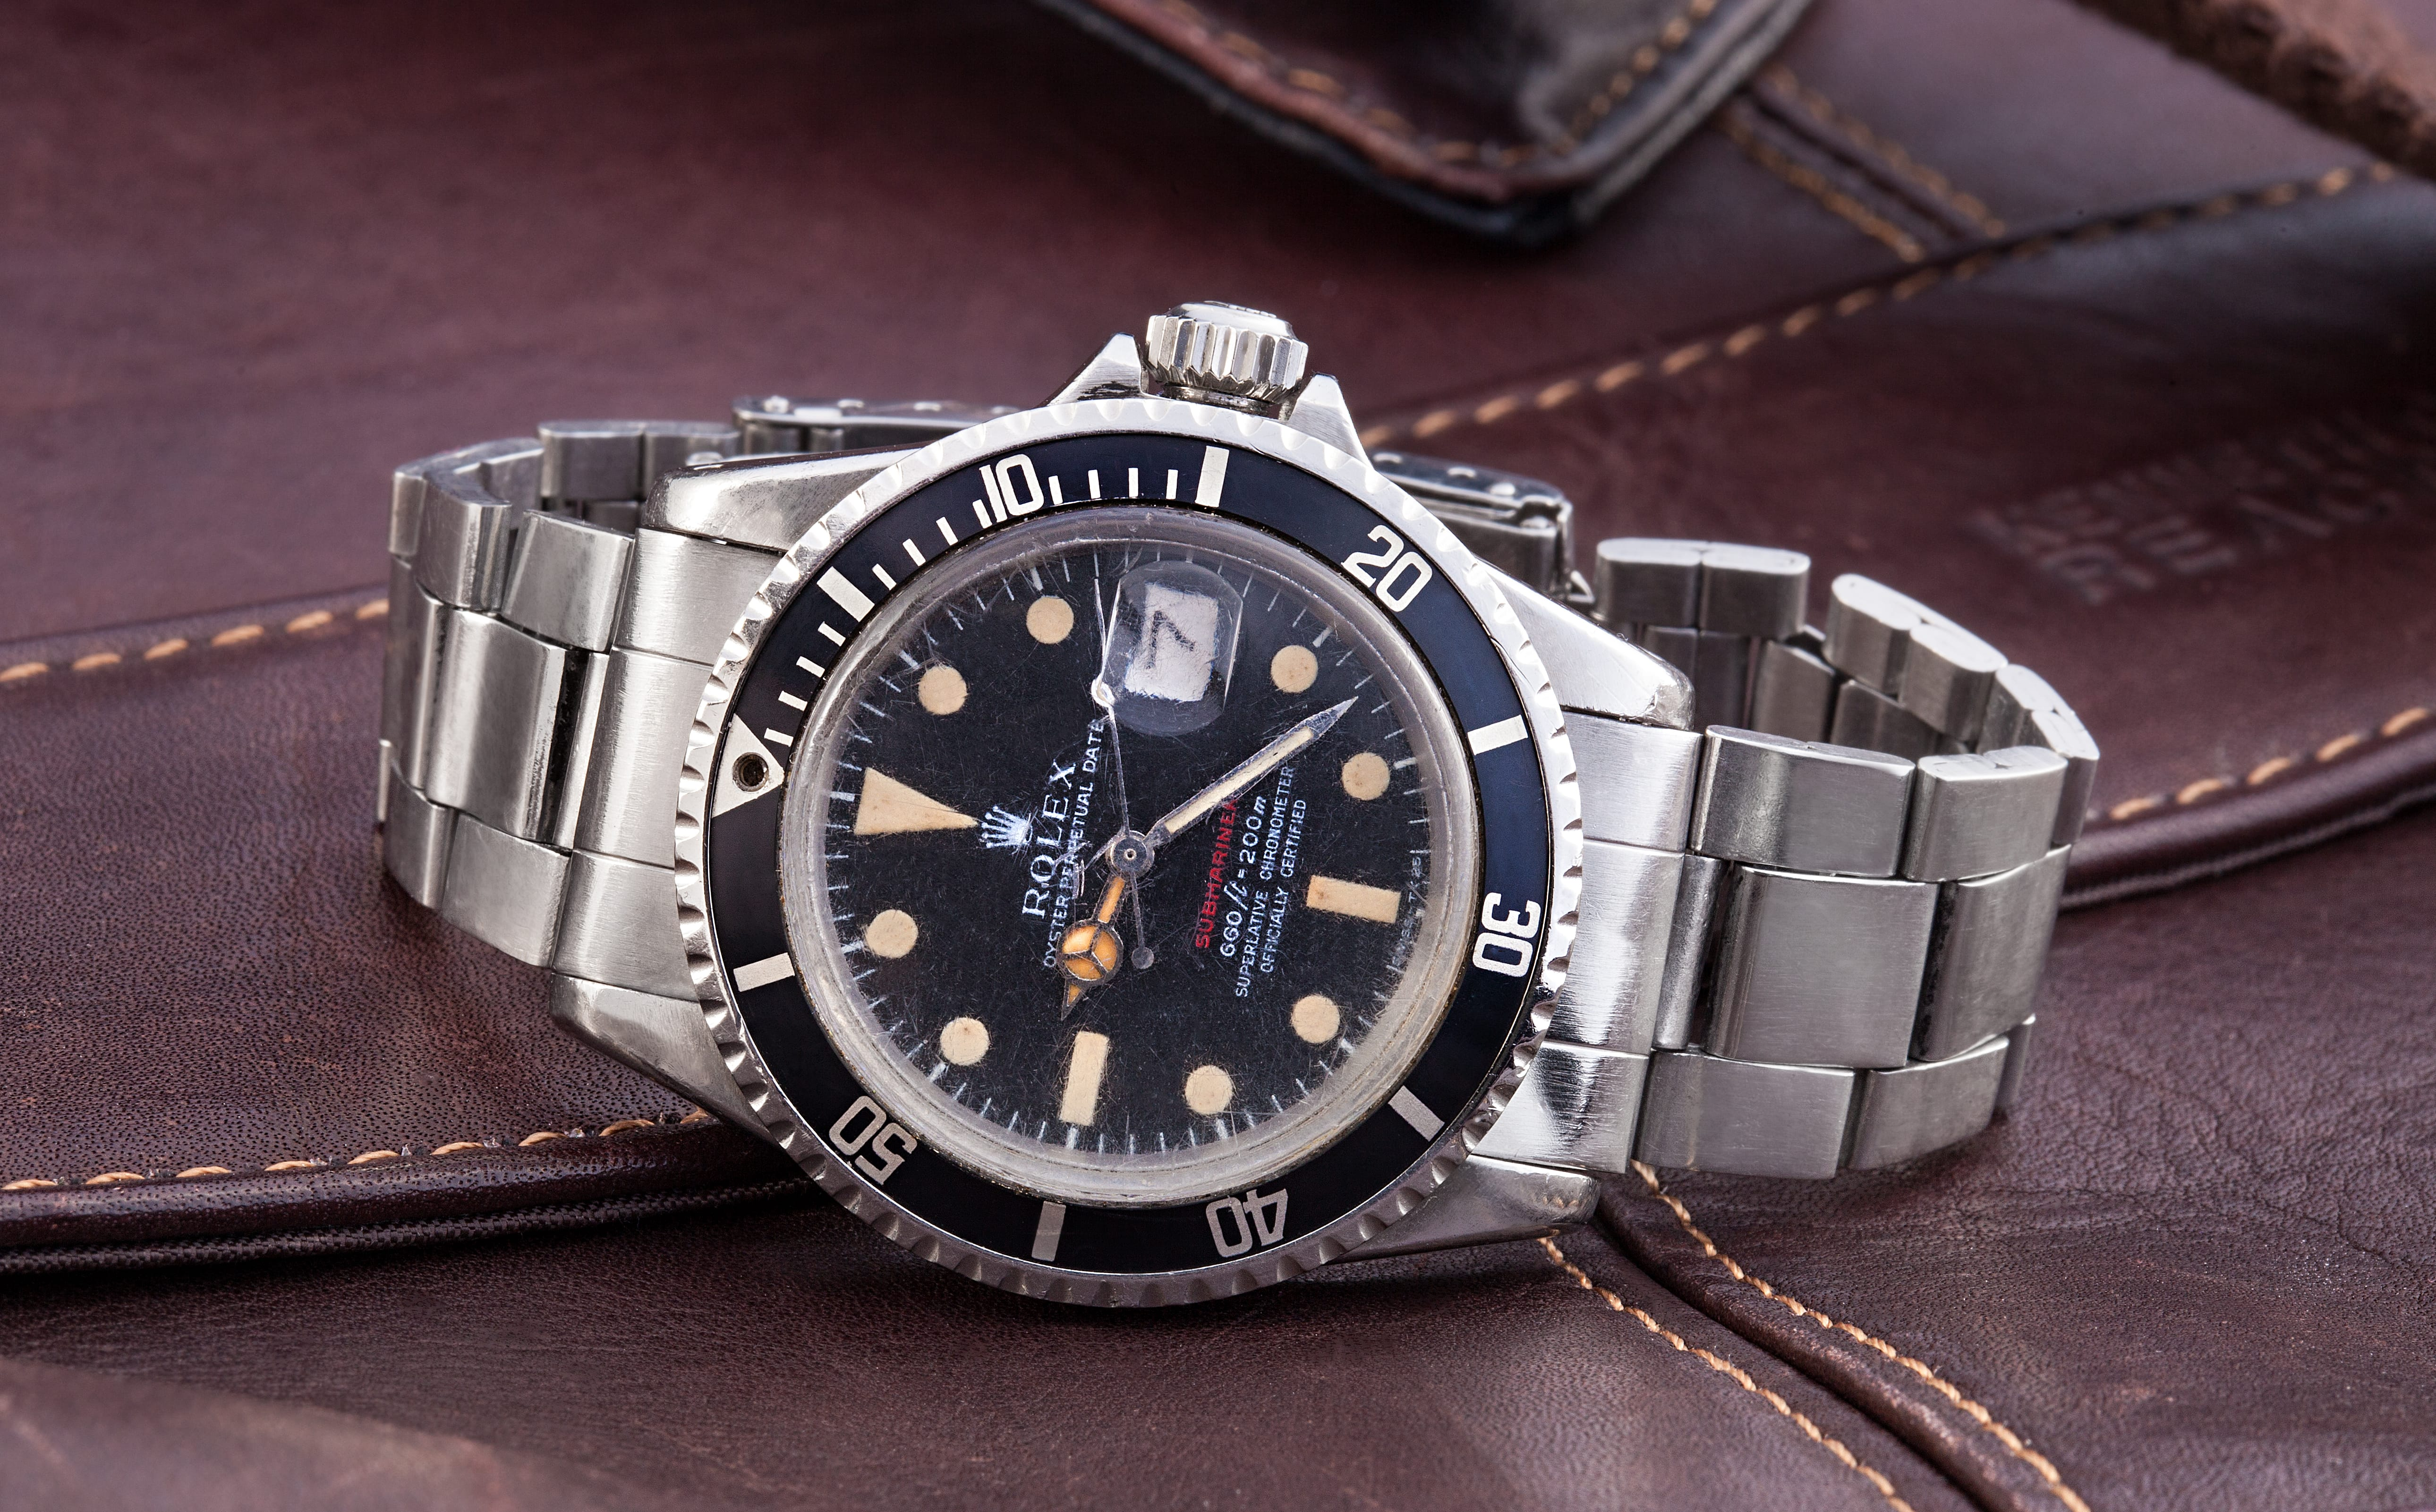 Rolex Submariner Vintage Replica Watches